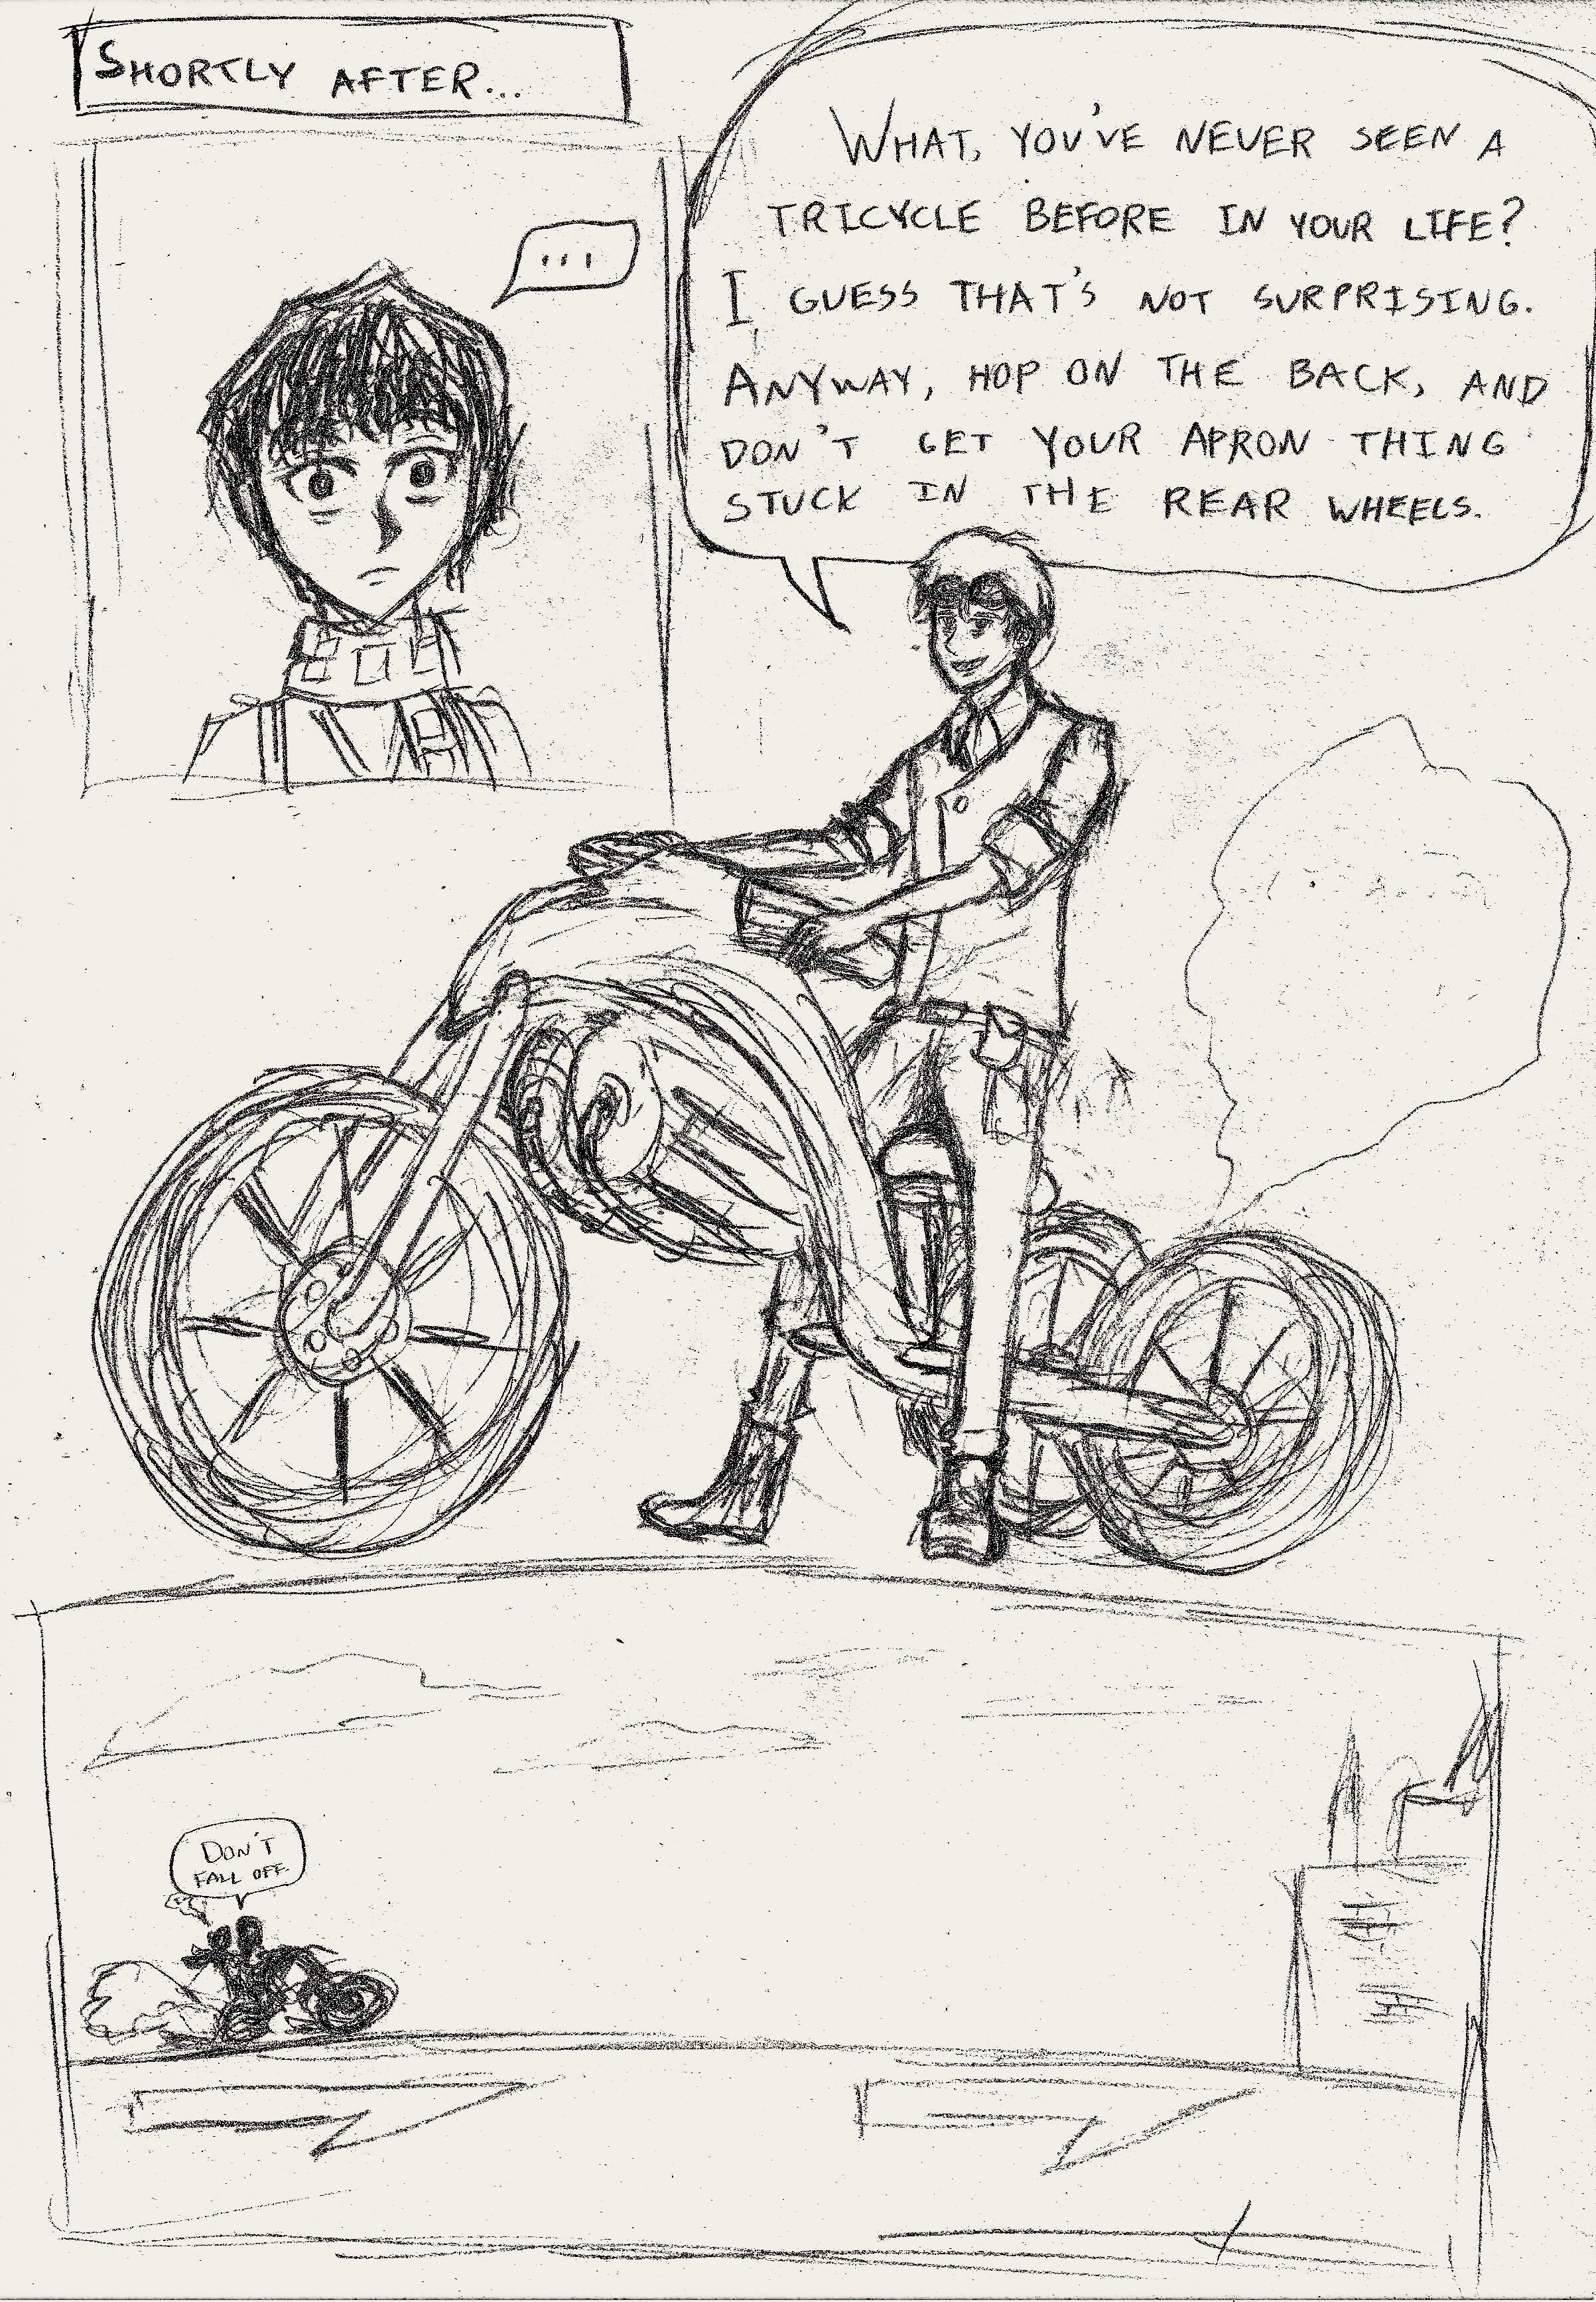 20. Tricycle